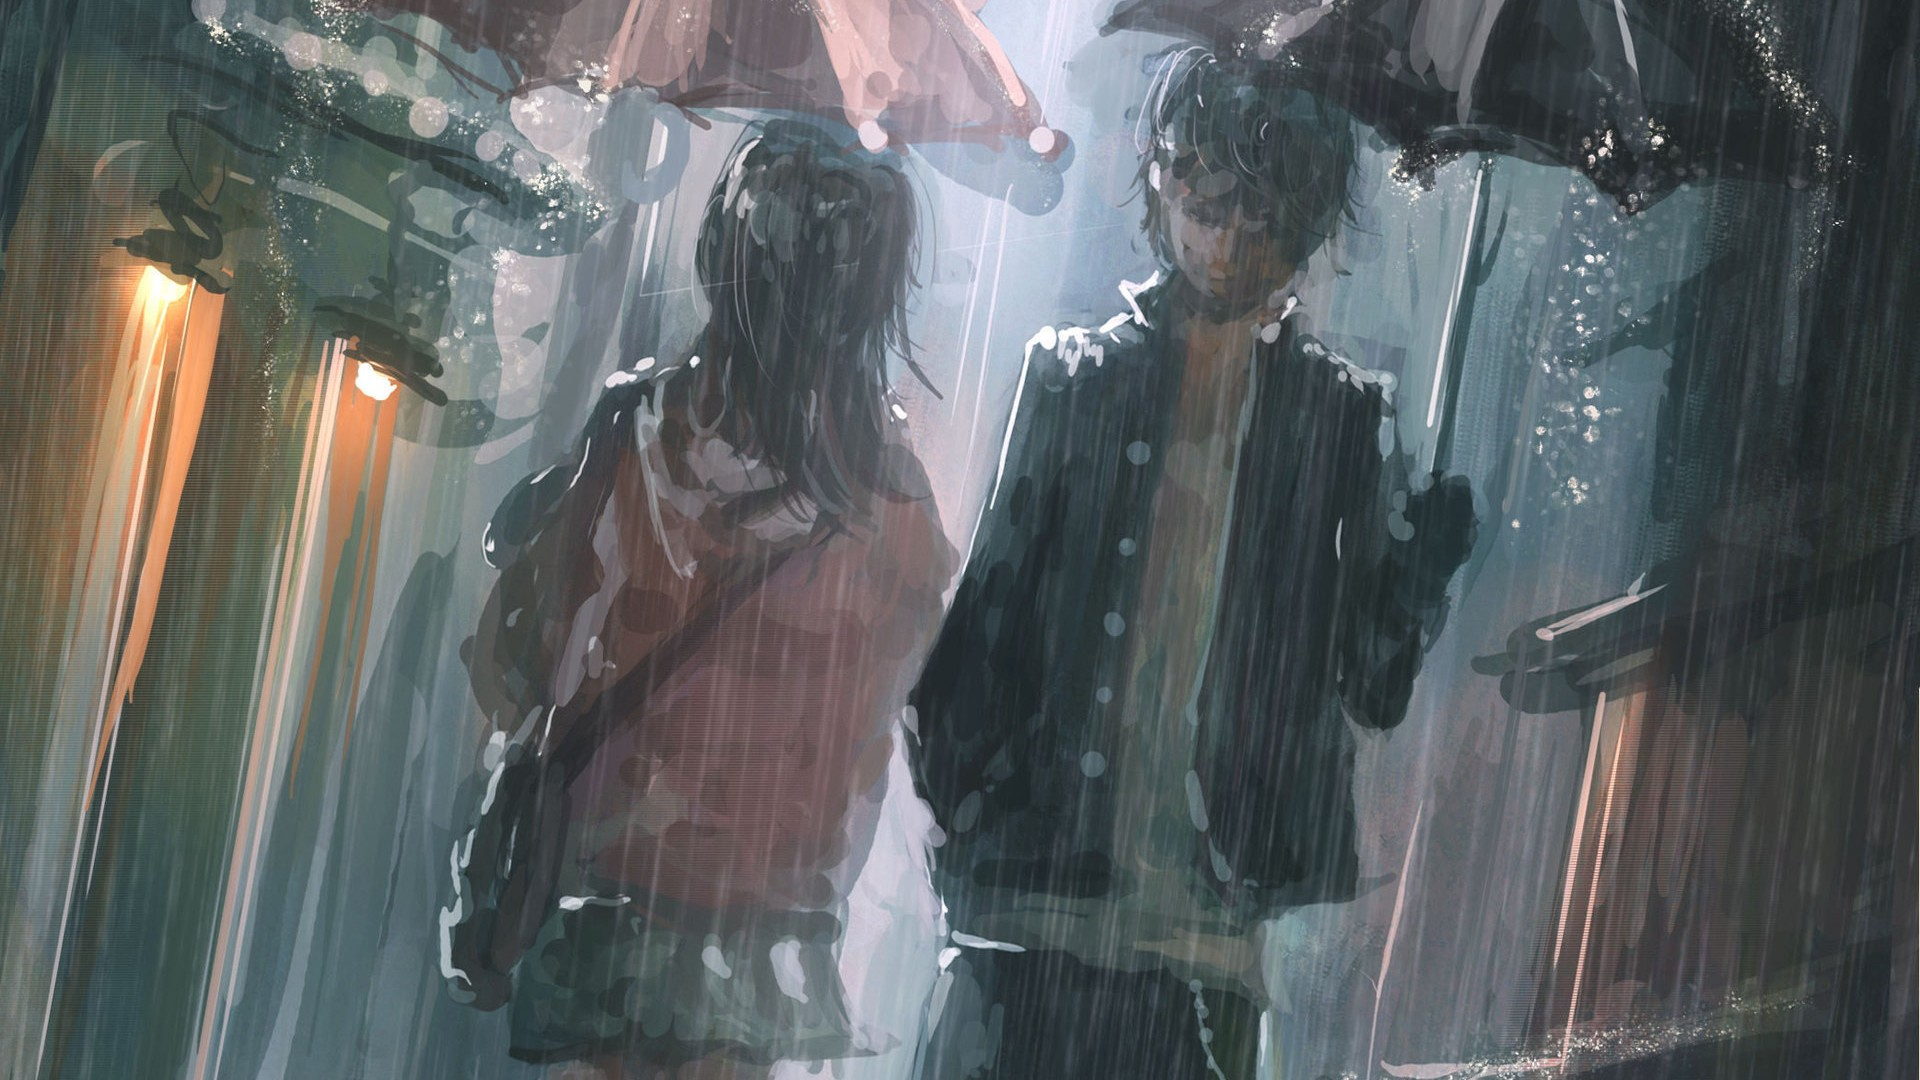 Anime Couple in rain - Top 10 HD Raindrop Wallpapers for Your Desktop